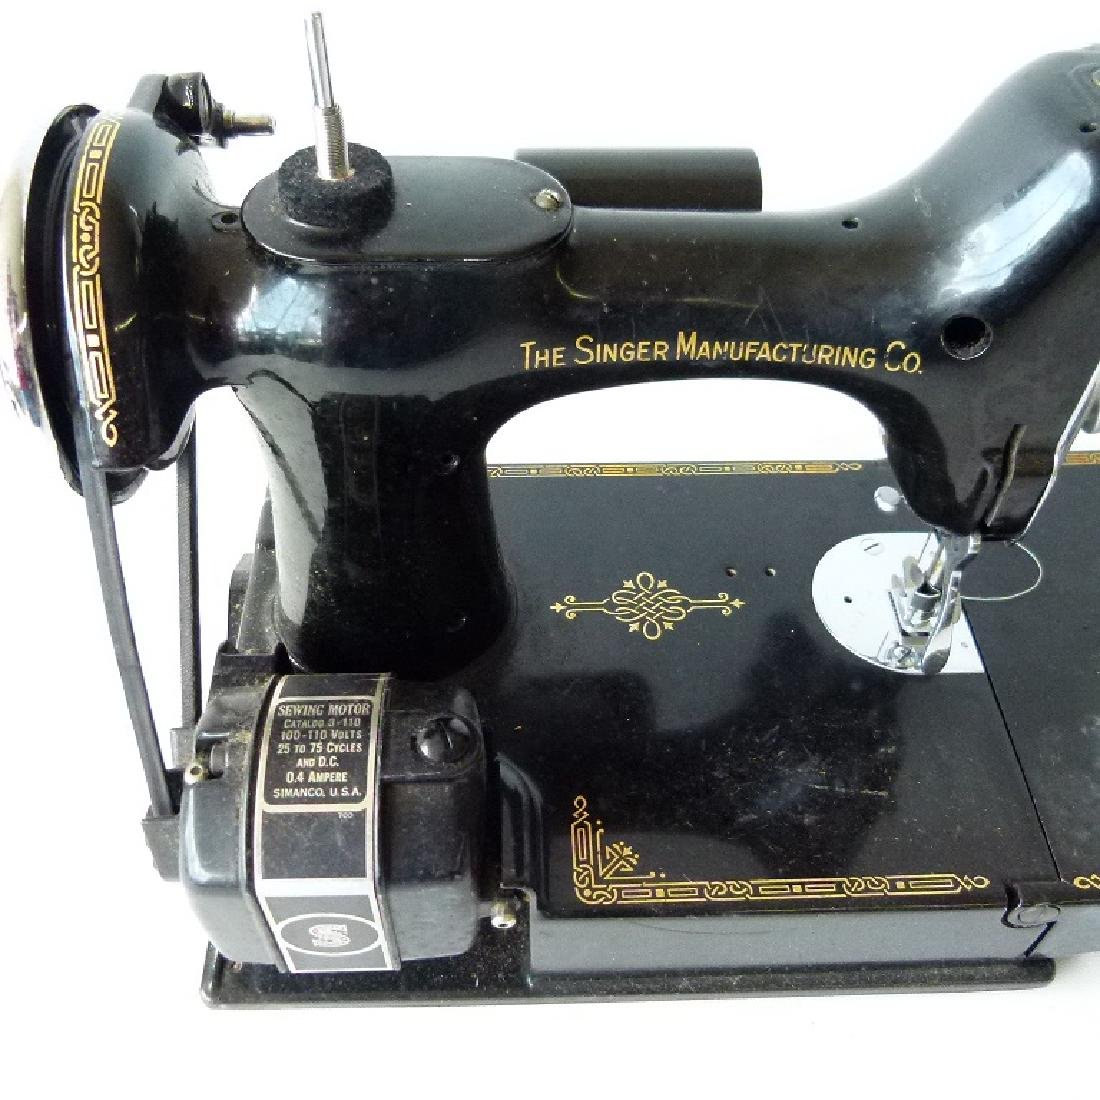 SINGER FEATHER LIGHT SEWING MACHINE - 6